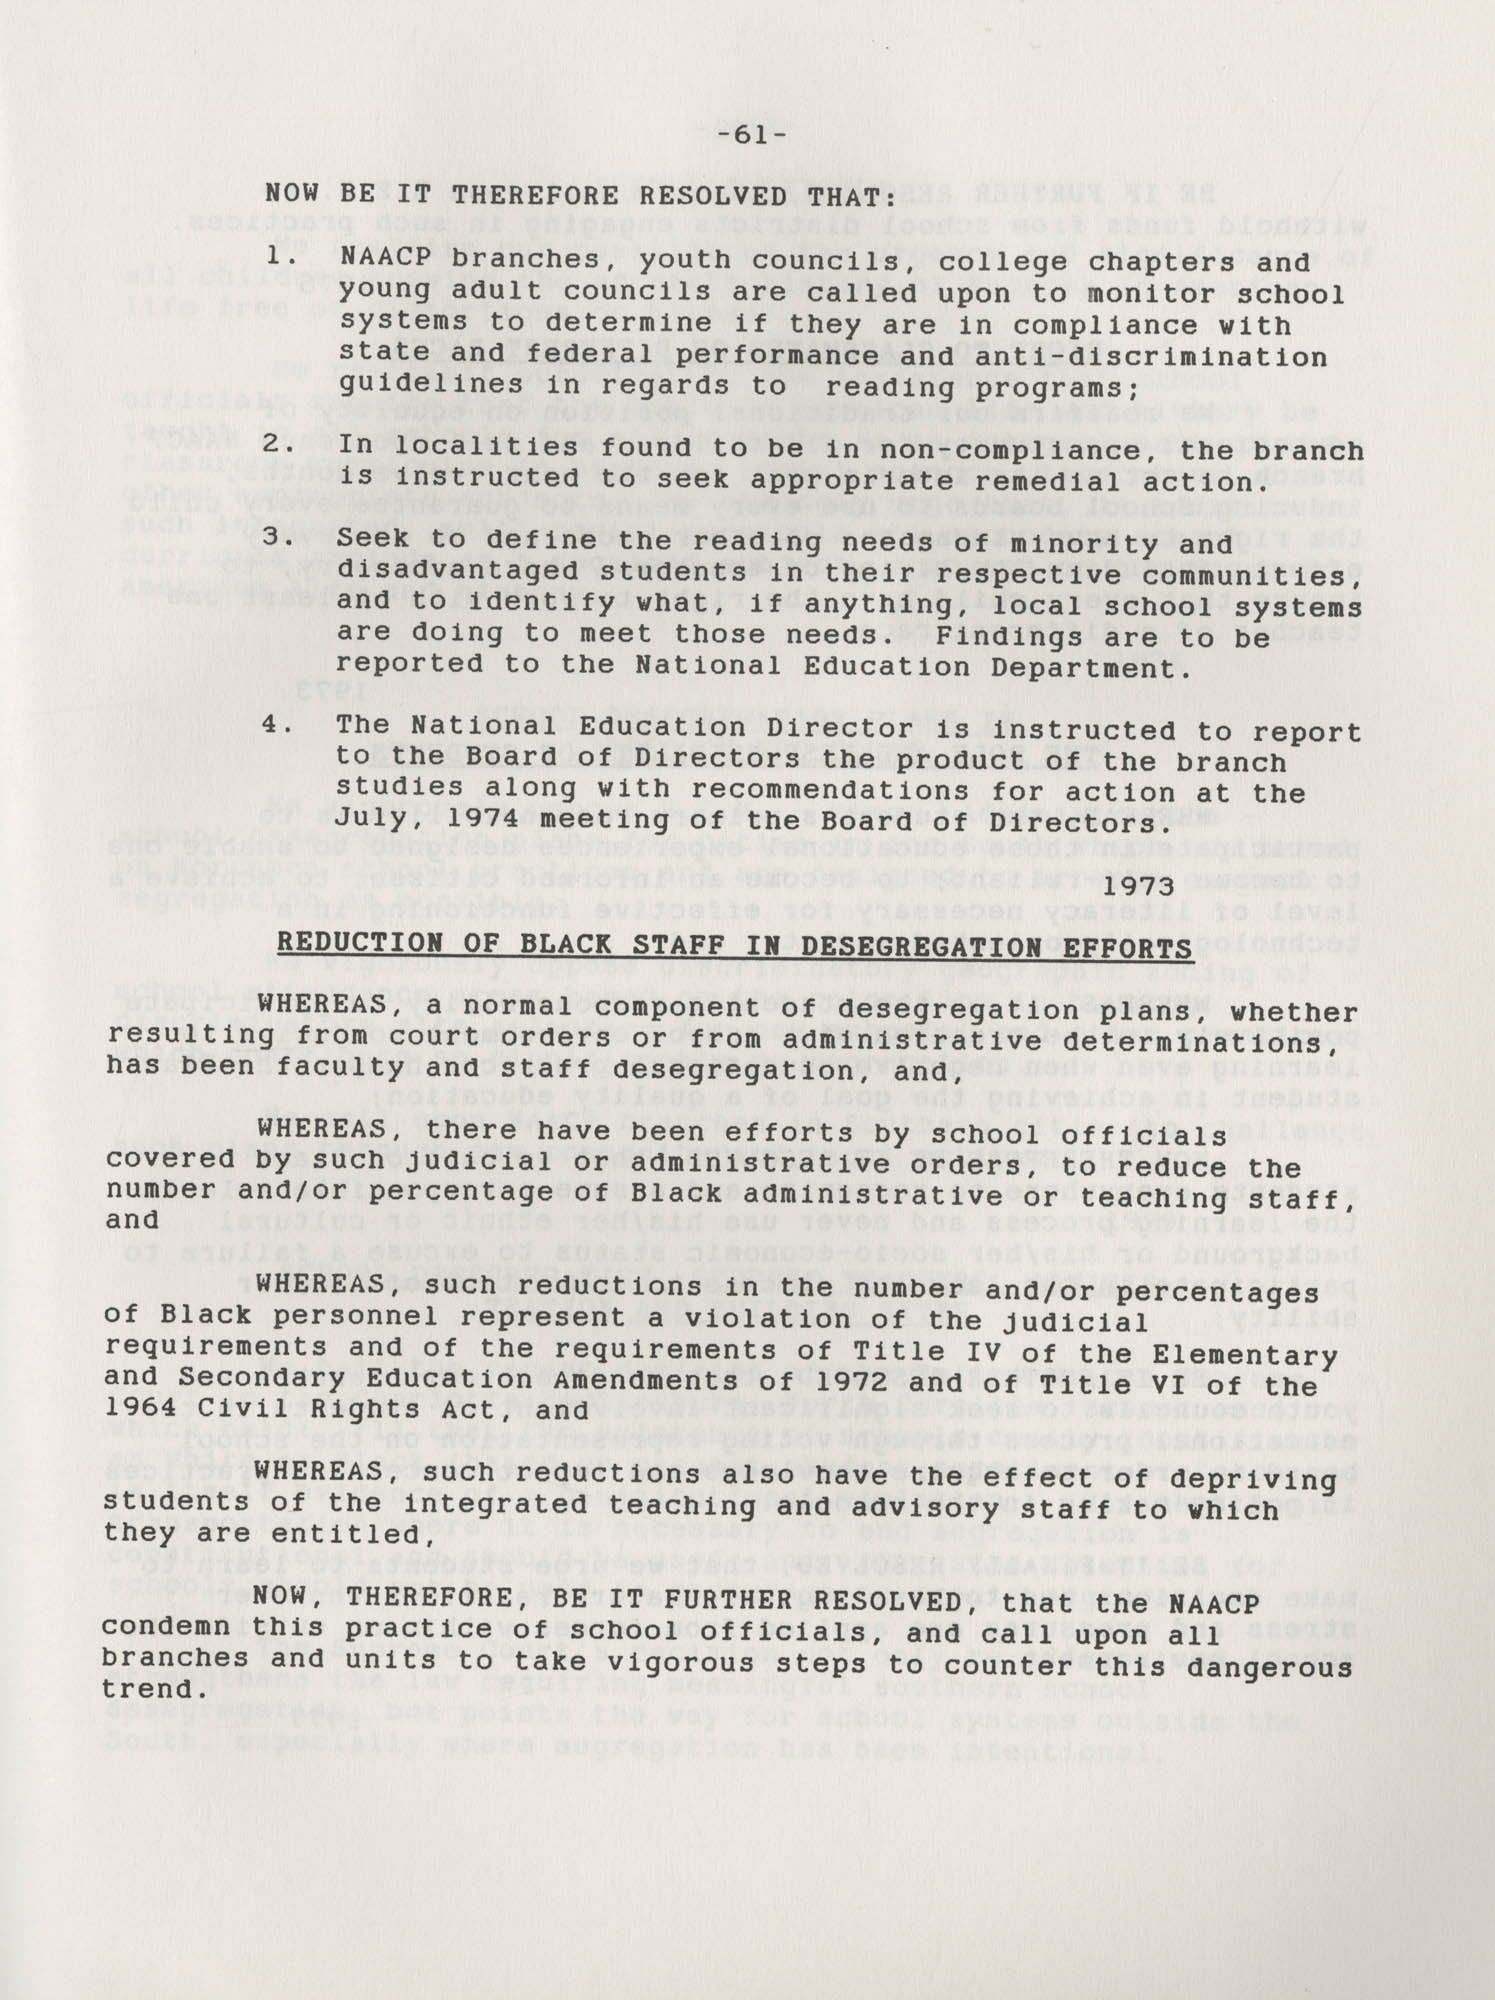 NAACP Resolutions on Education, 1970-1989, Index to Education Resolutions, Page 61